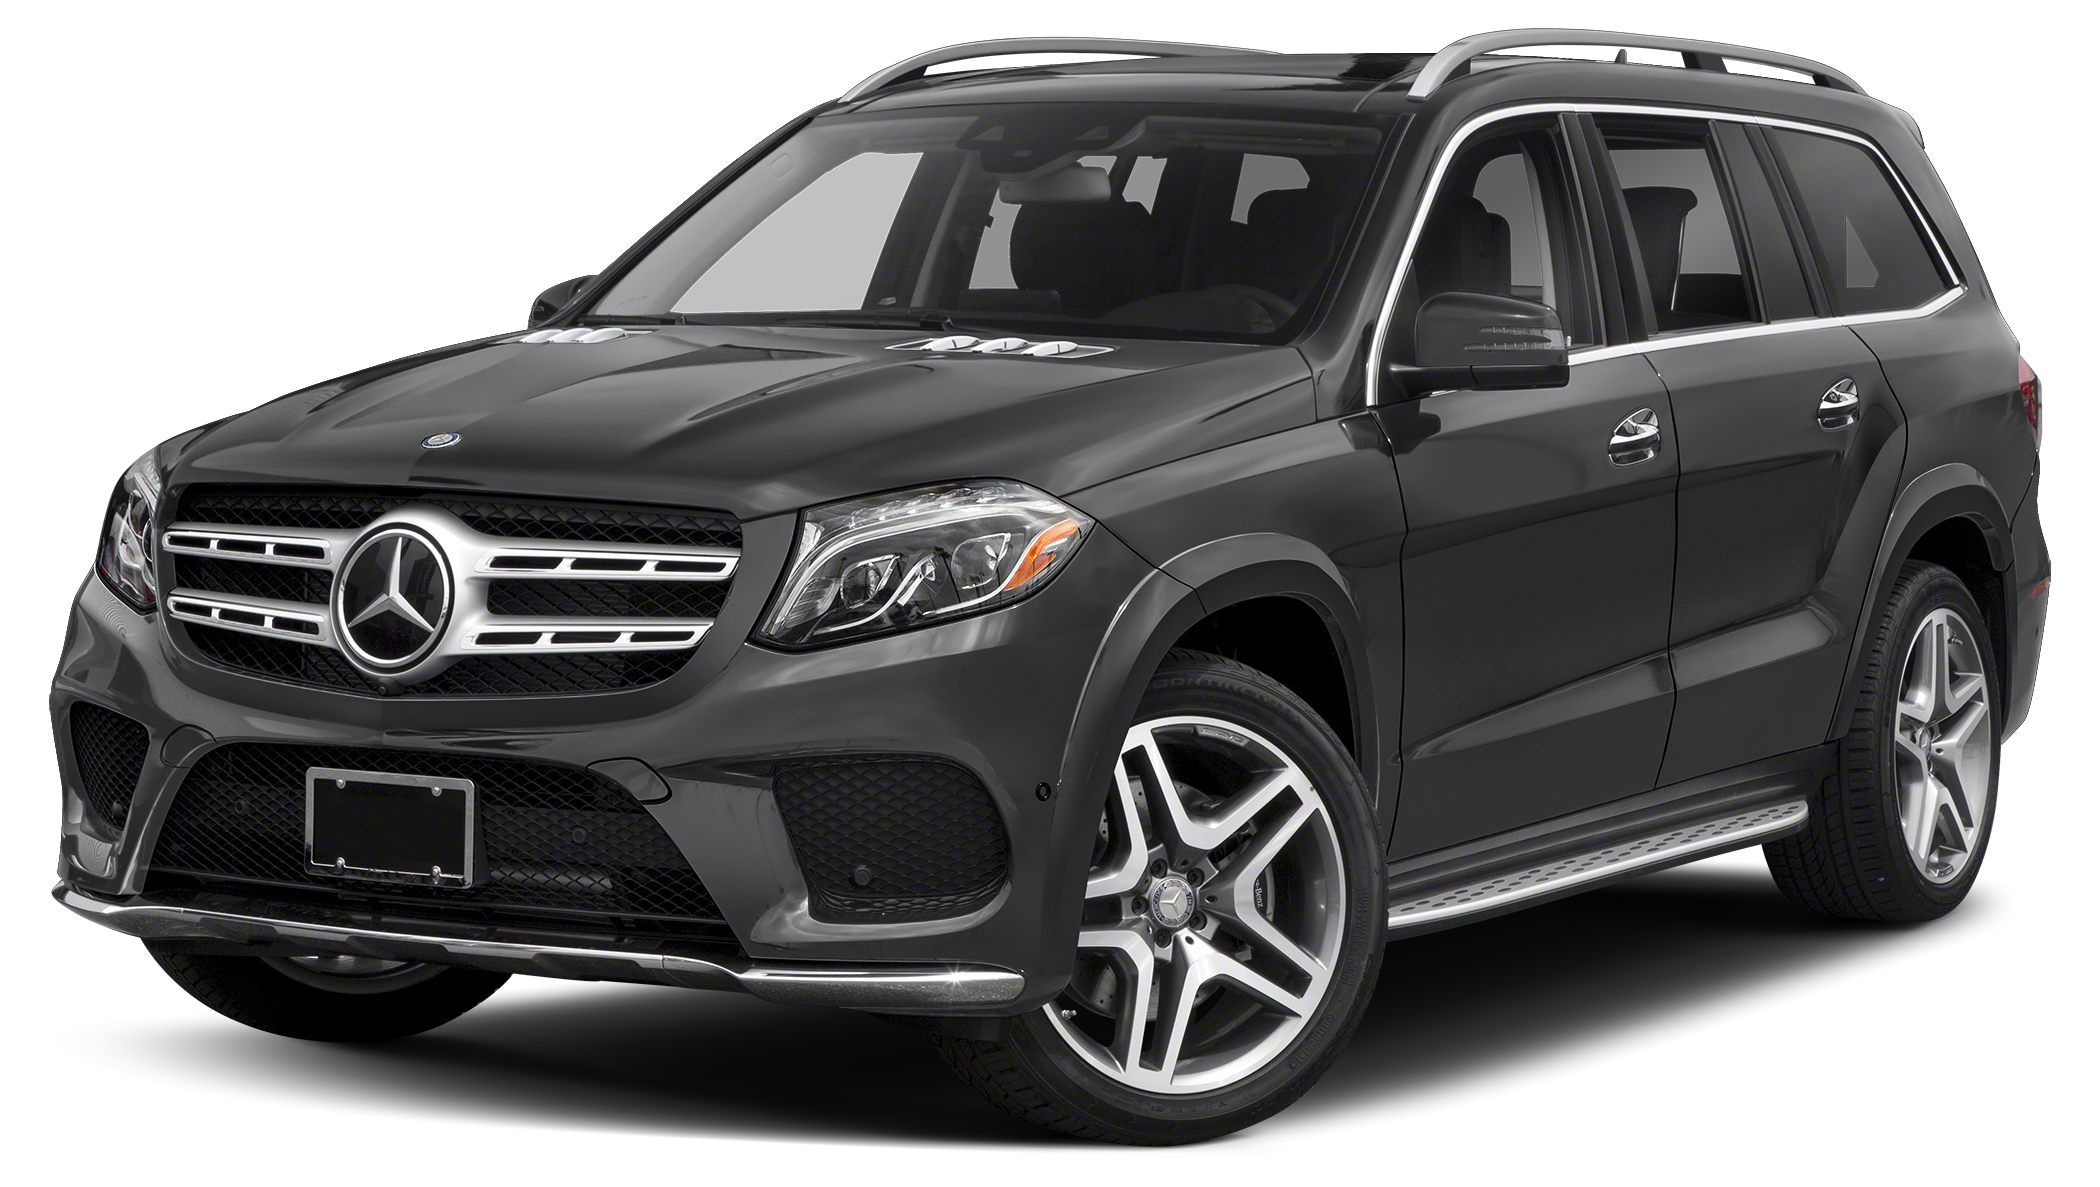 2017 MERCEDES GLS-Class GLS550 4MATIC Miles 5Color Obsidian Black Metallic Stock 768248 VIN